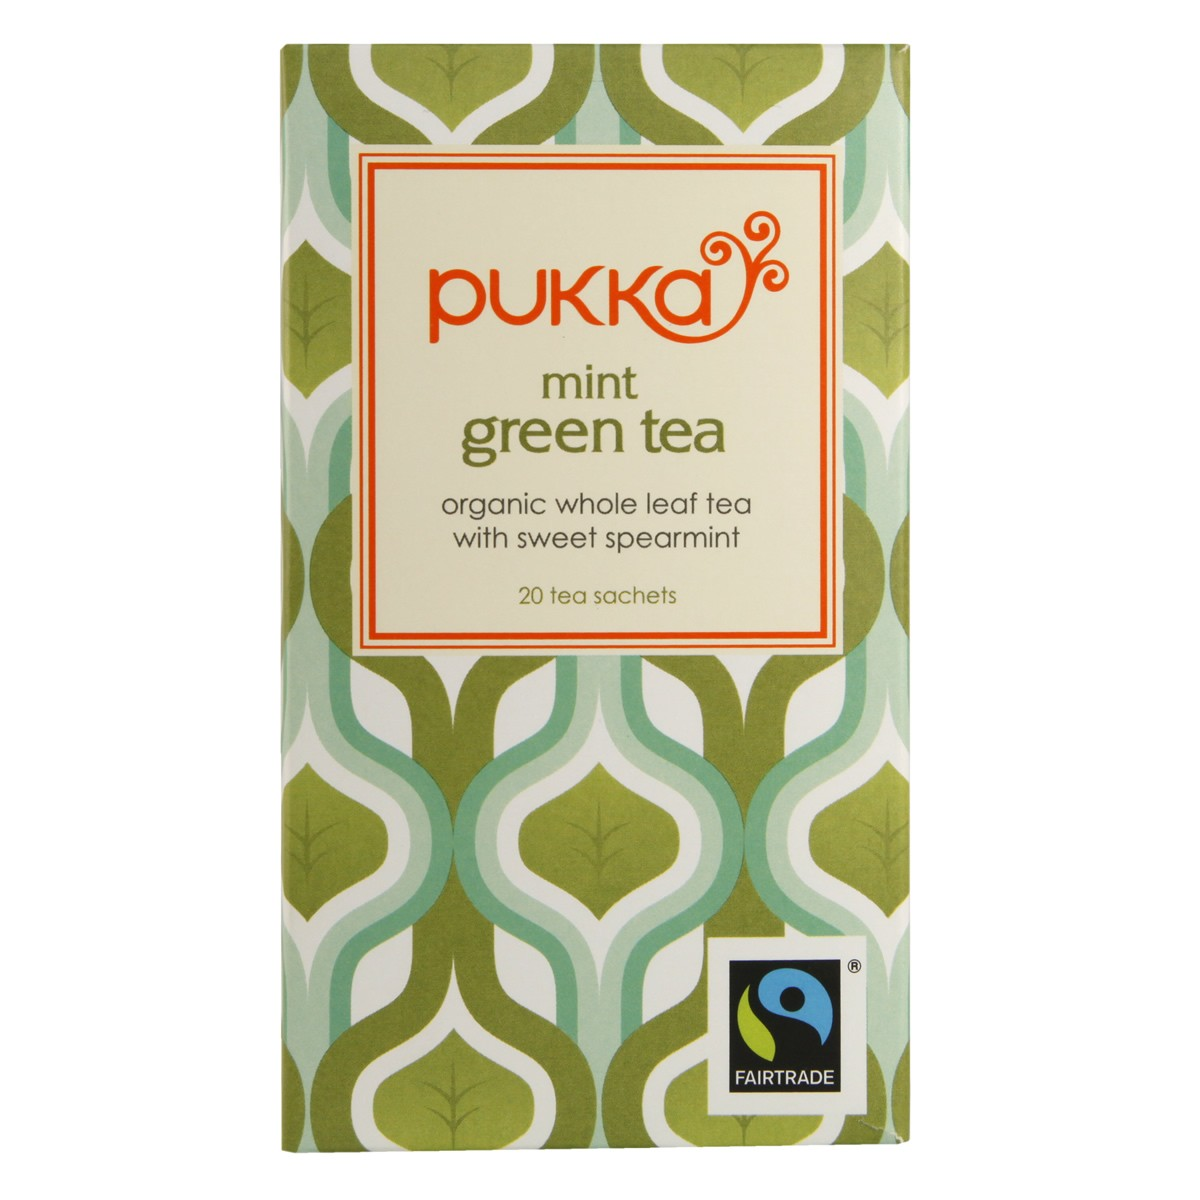 Pukka Mint Green Tea